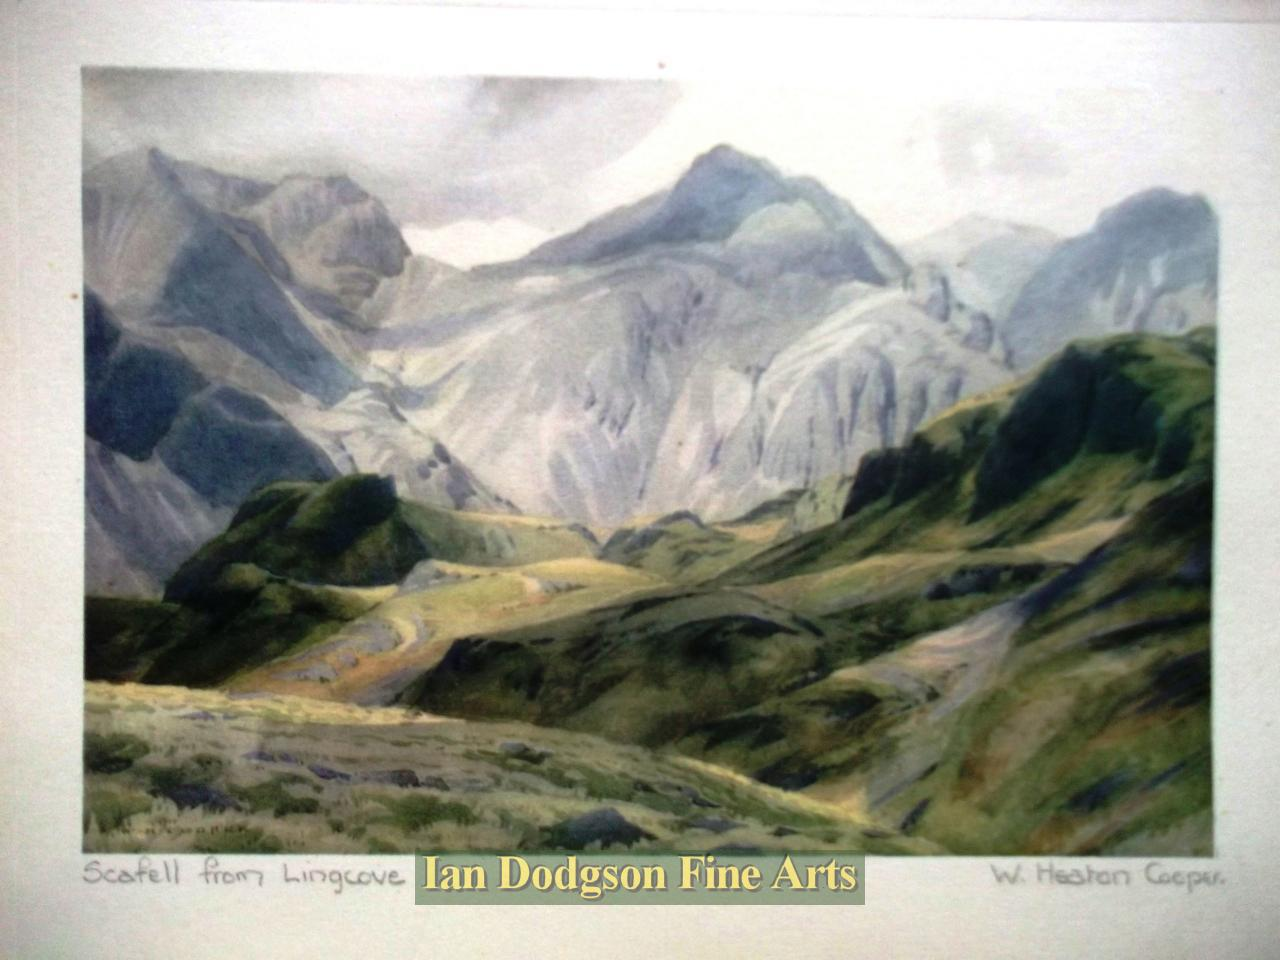 Scafell from Lingcove by William Heaton Cooper